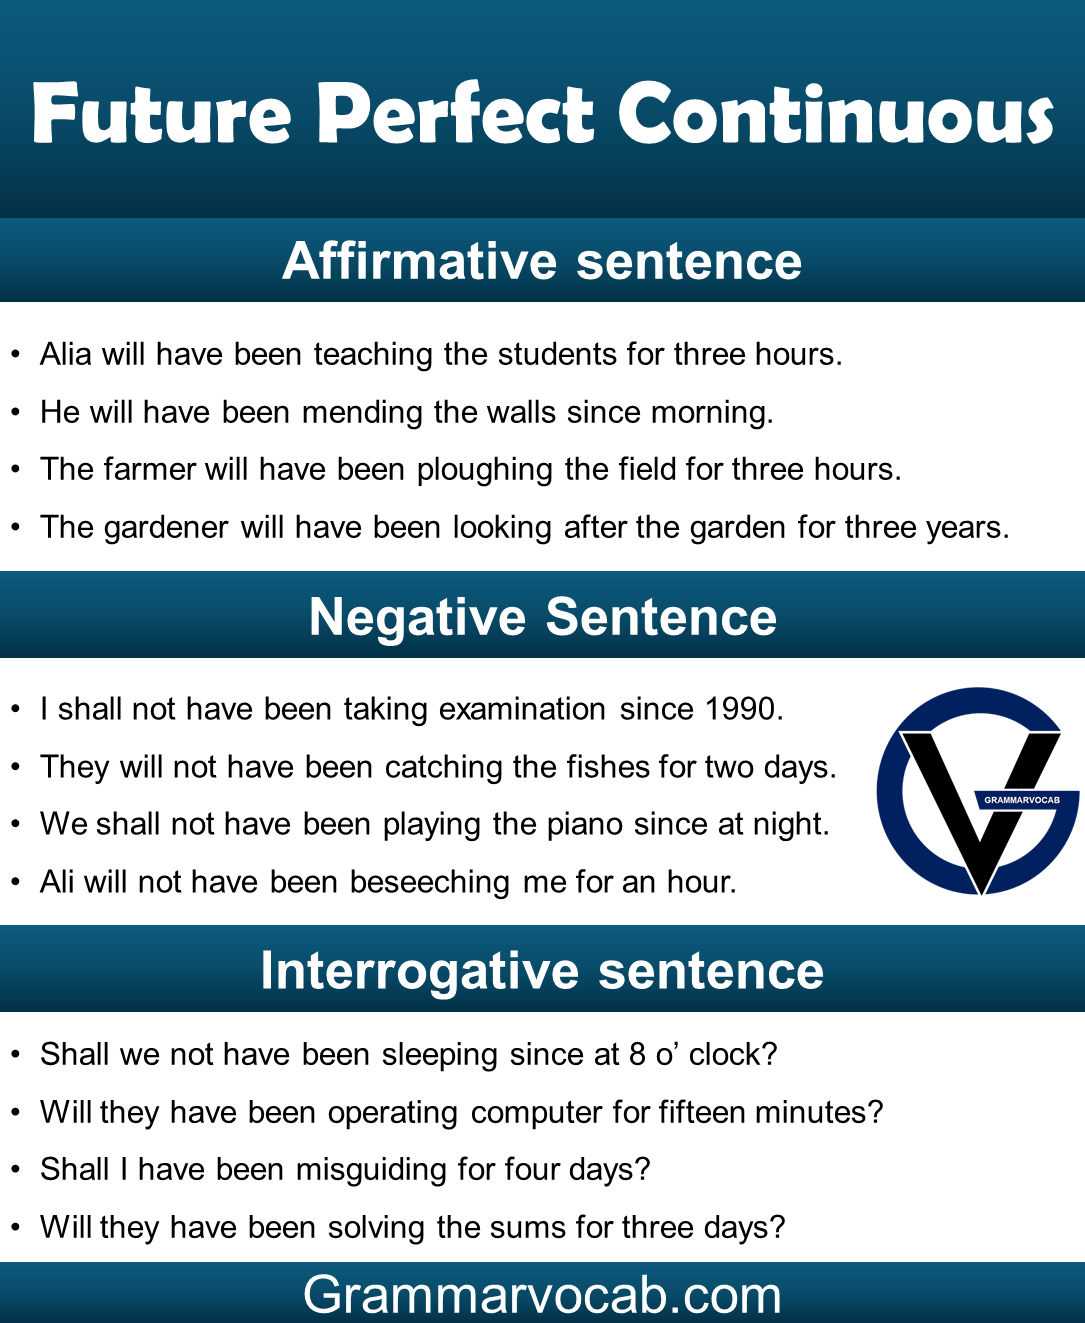 Future Perfect Continuous Tense Examples